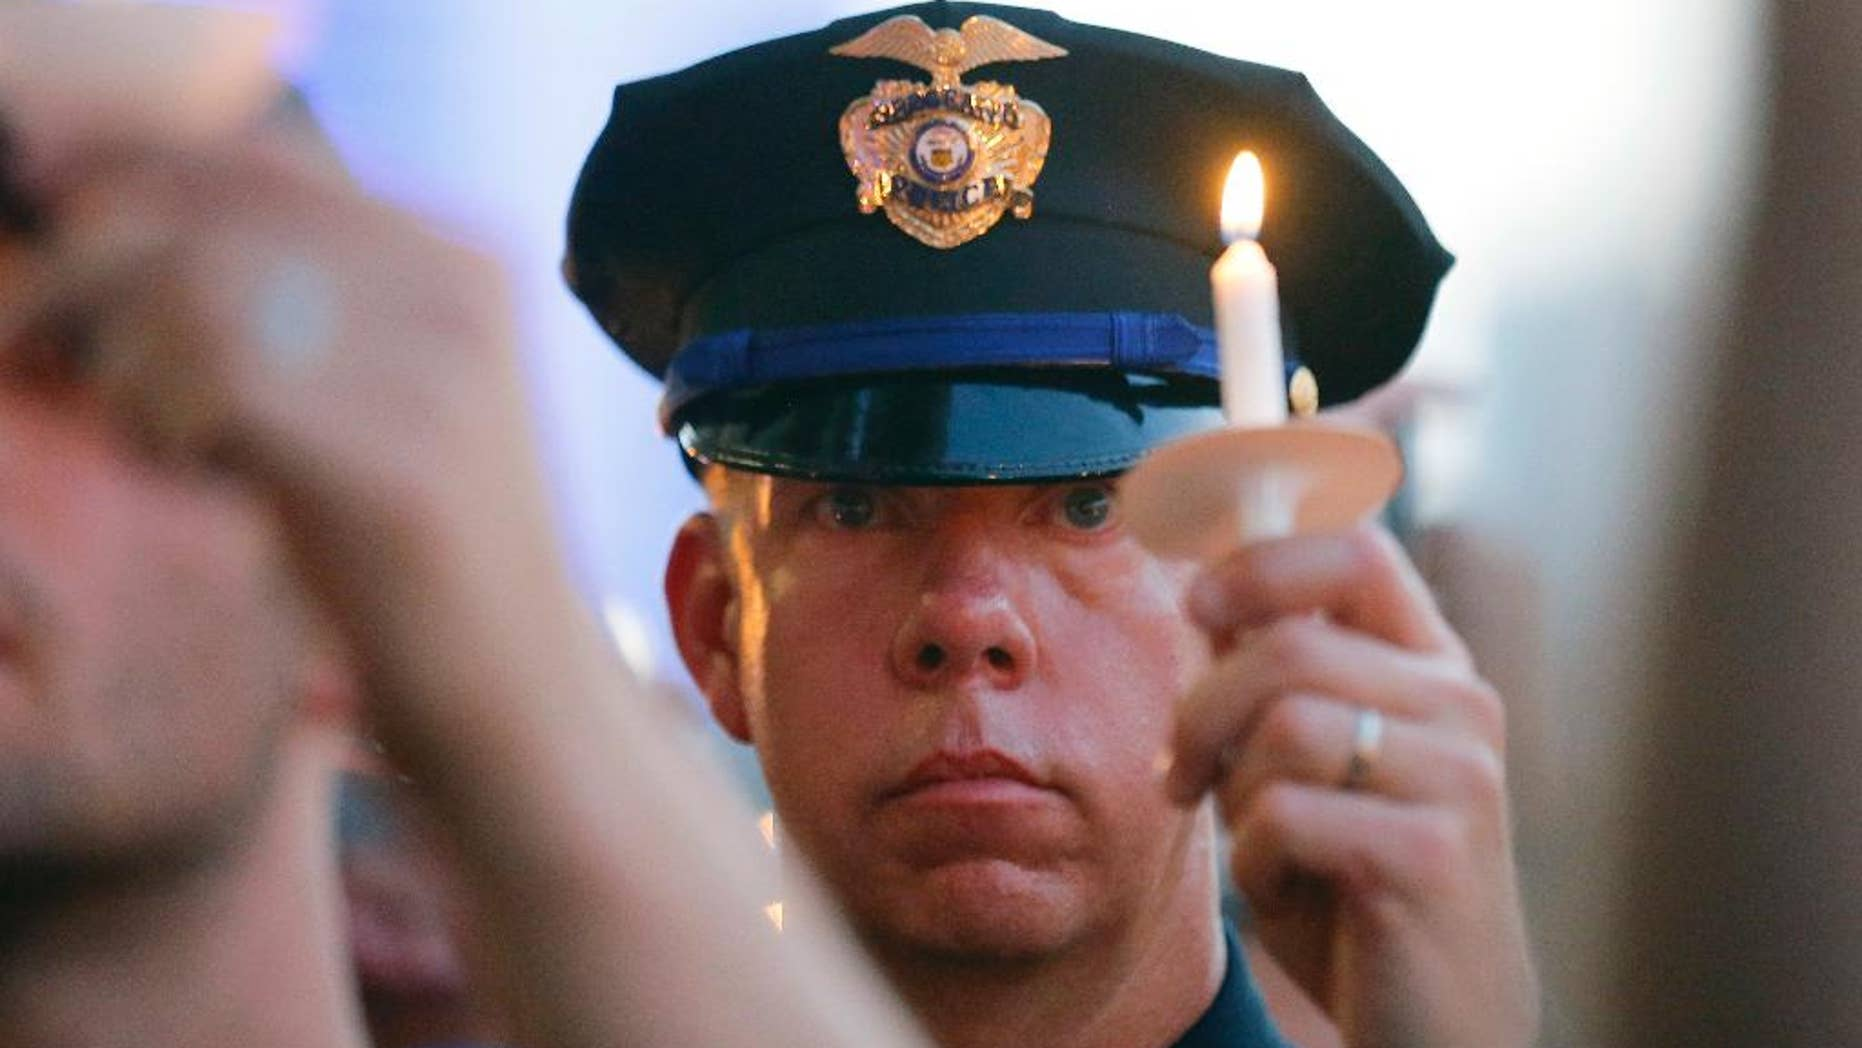 A police officers takes part in a candle light vigil at City Hall, Monday, July 11, 2016, in Dallas. Five police officers were killed and several injured during a shooting in downtown Dallas last Thursday night. (AP Photo/Tony Gutierrez)